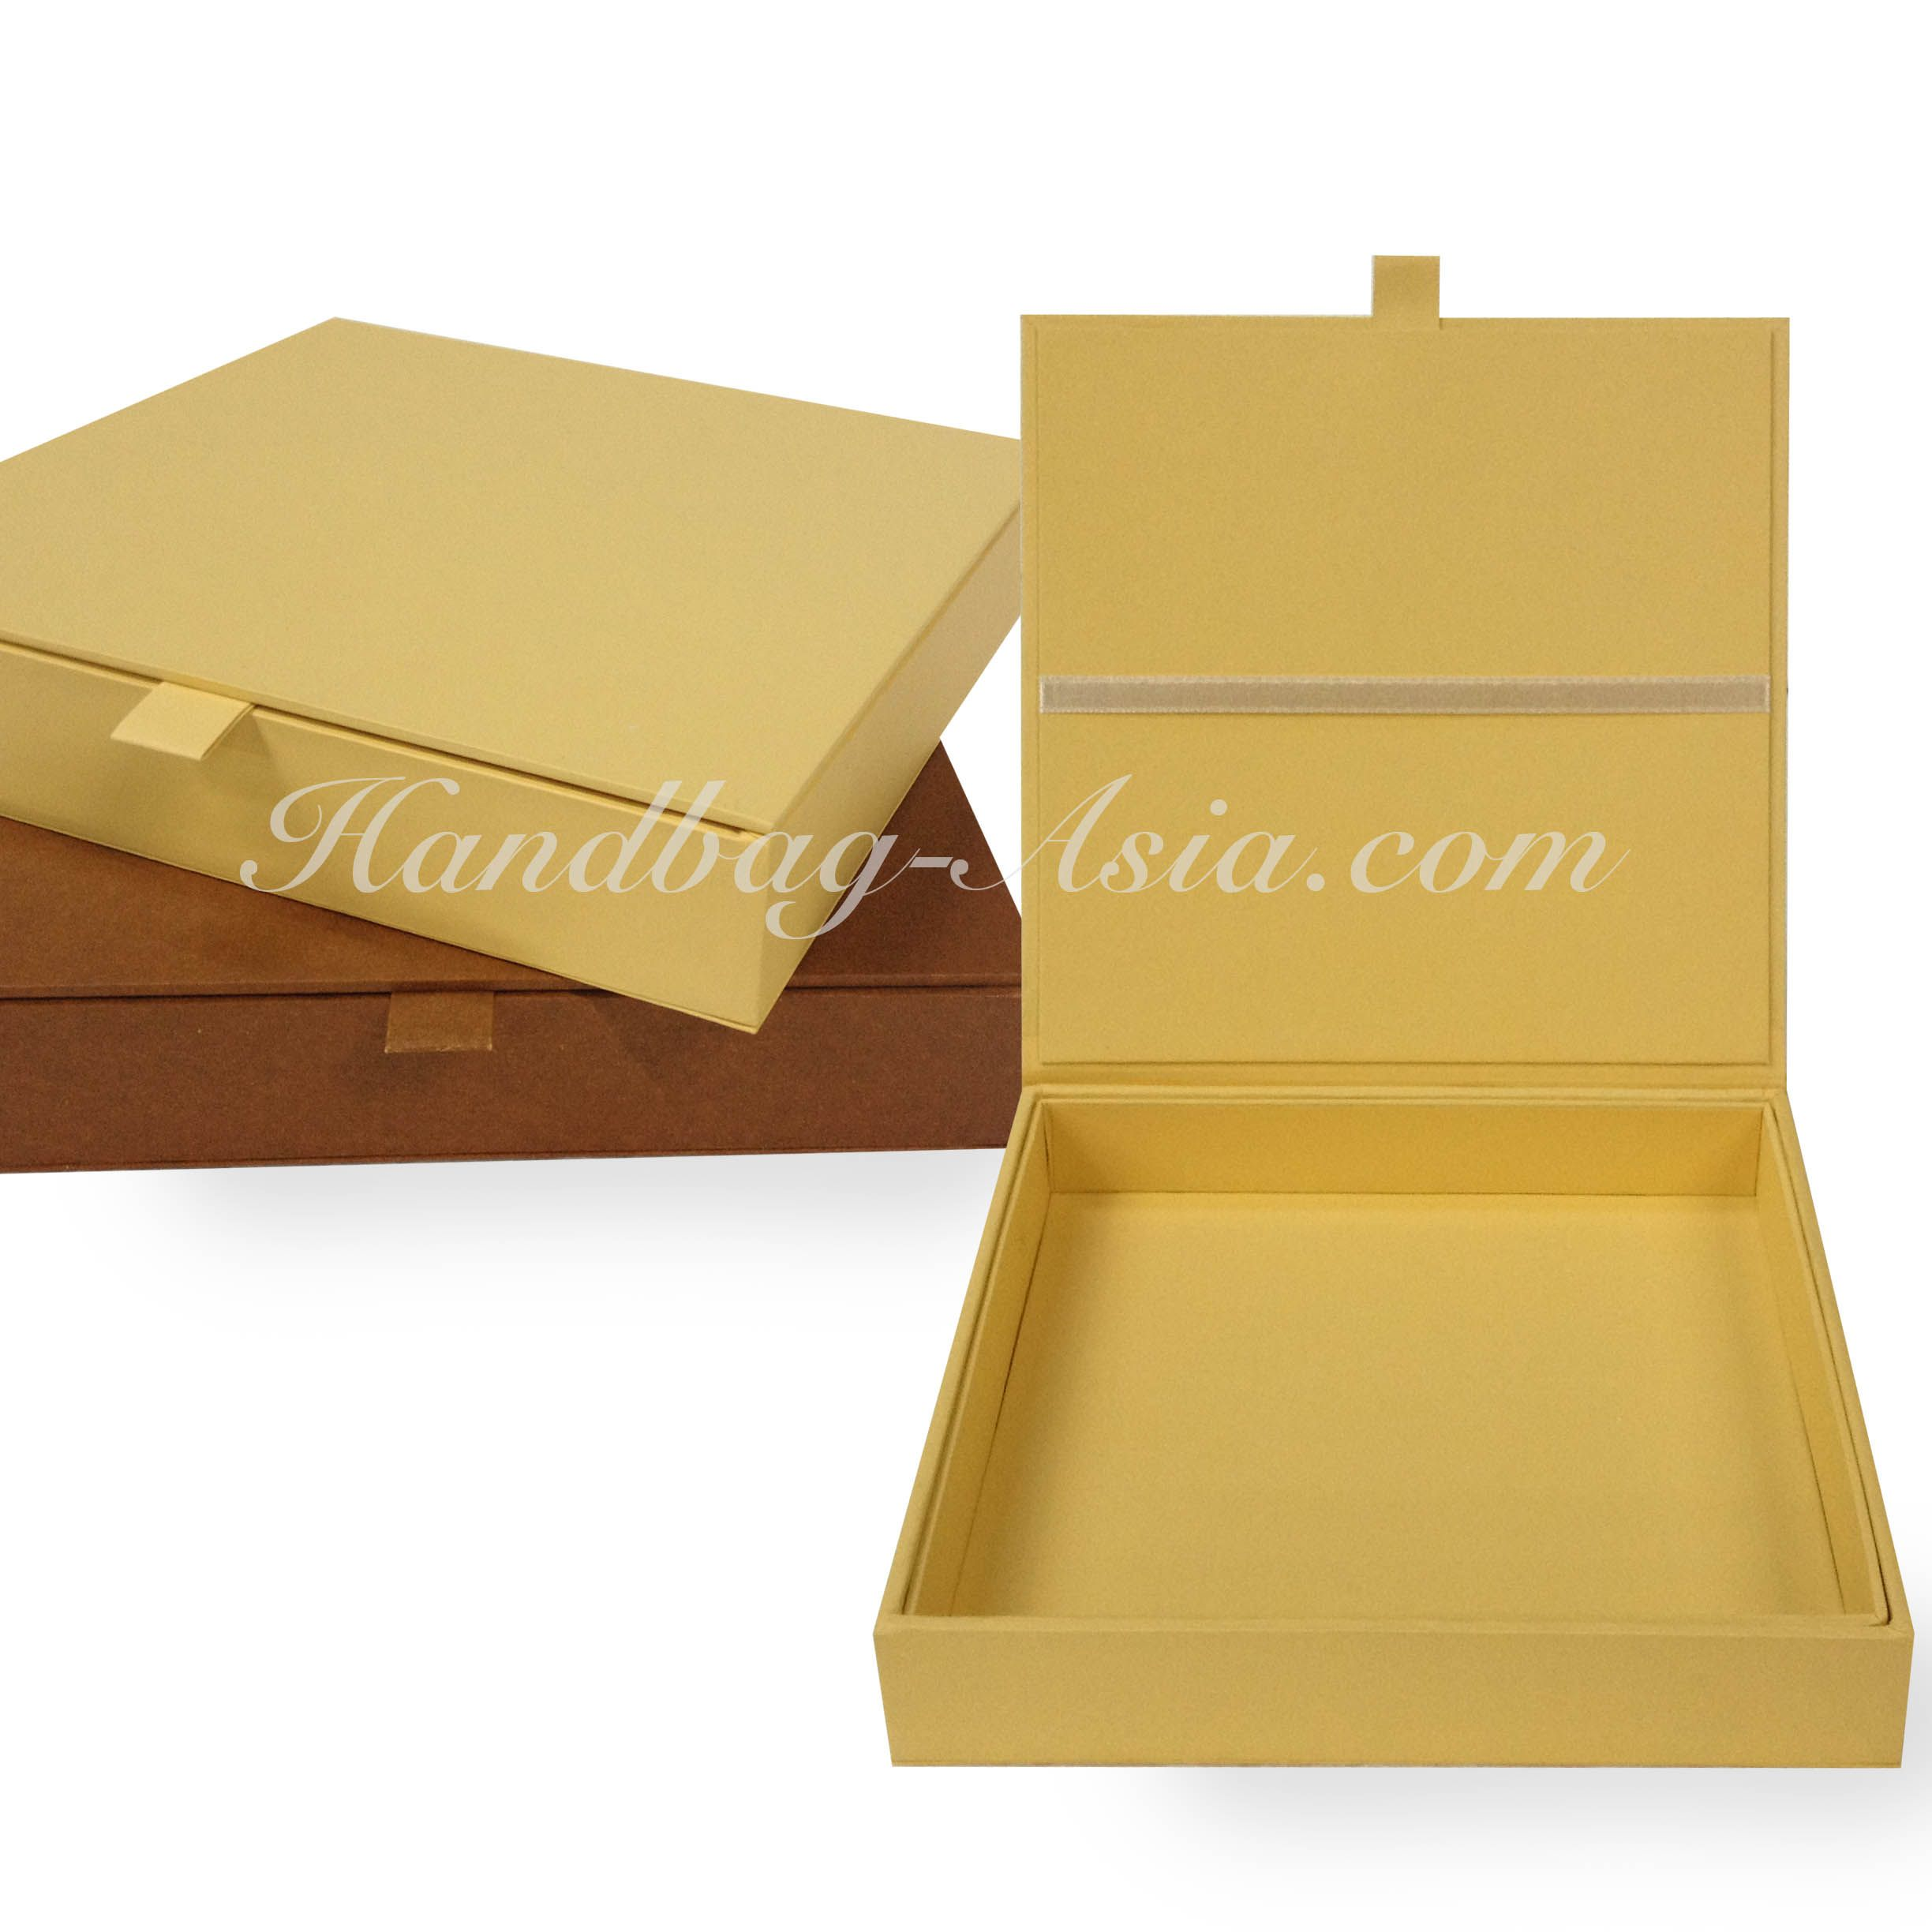 Hand made hinged lid paper wedding invitation box wedding boxes art paper covered cardboard wedding boxes for invitation cards invitation boxes by prestige creations are stopboris Gallery